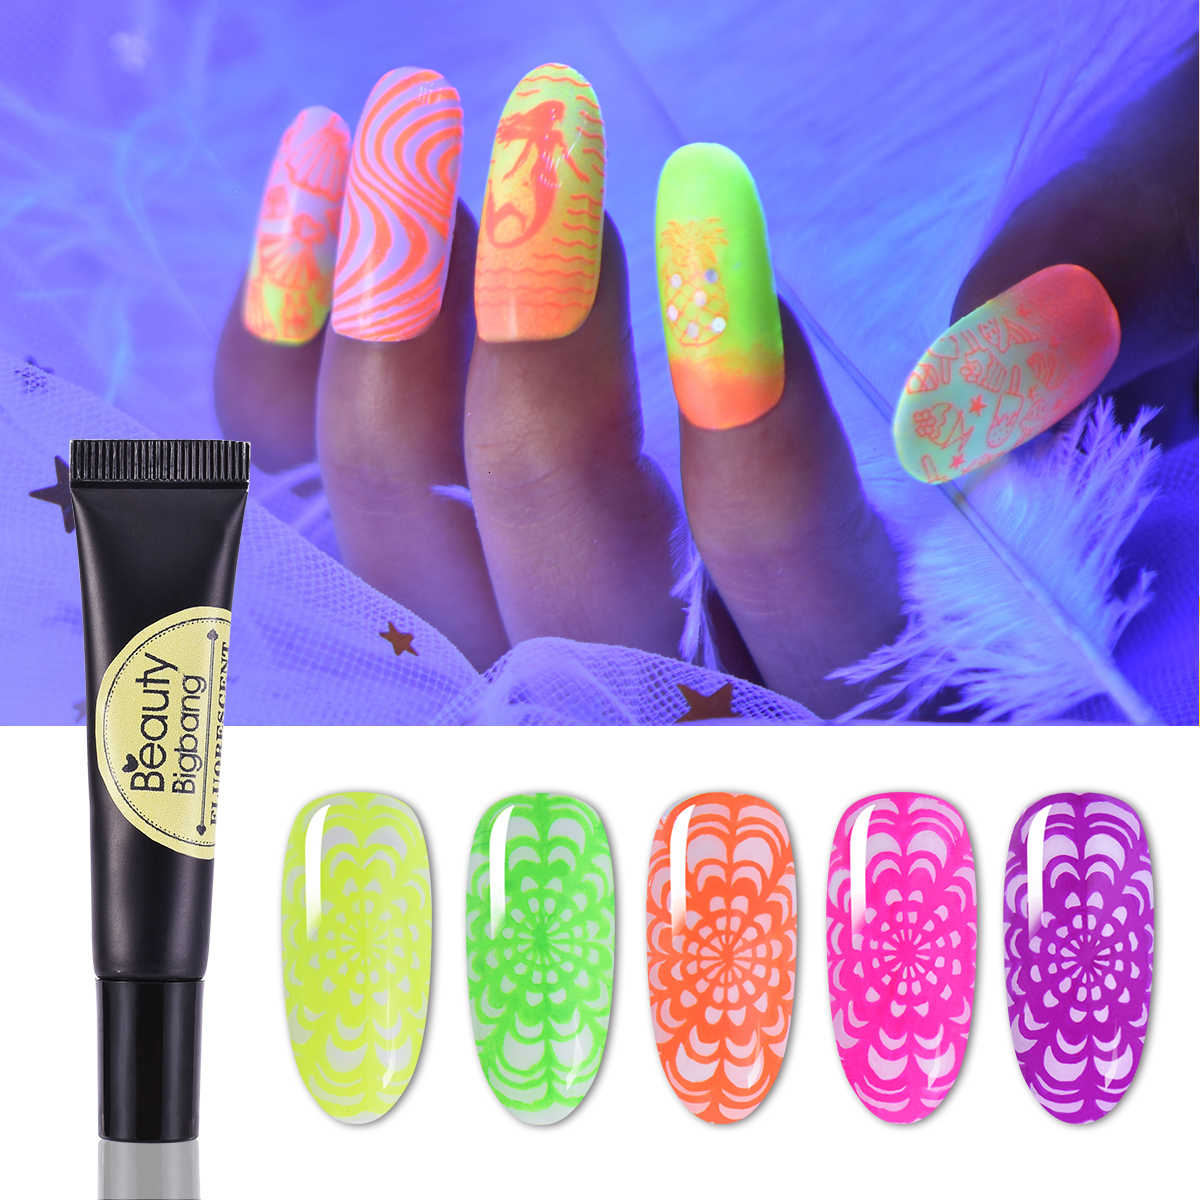 Beautybigbang 8ml Al Neon Stamping Gel Fluorescente Soak Off Colorato Vernice Glow In The Dark UV Luce Unghie artistiche Poli Gel per Piatti